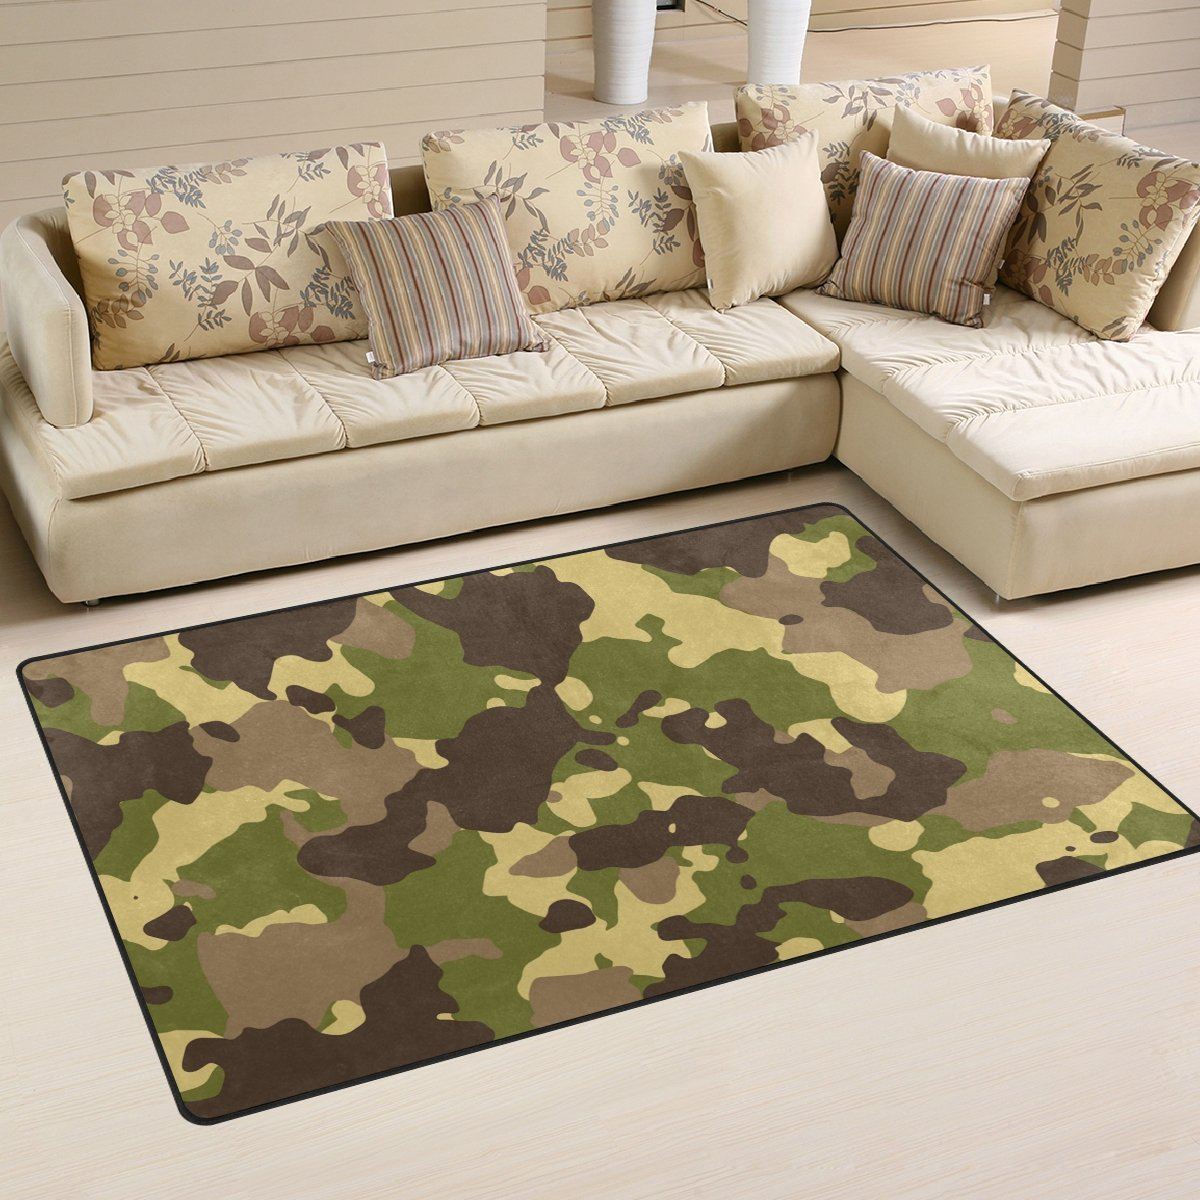 WellLee Area Rug,Camouflage Color1 Floor Rug Non-Slip Doormat for Living Dining Dorm Room Bedroom Decor 31x20 inch